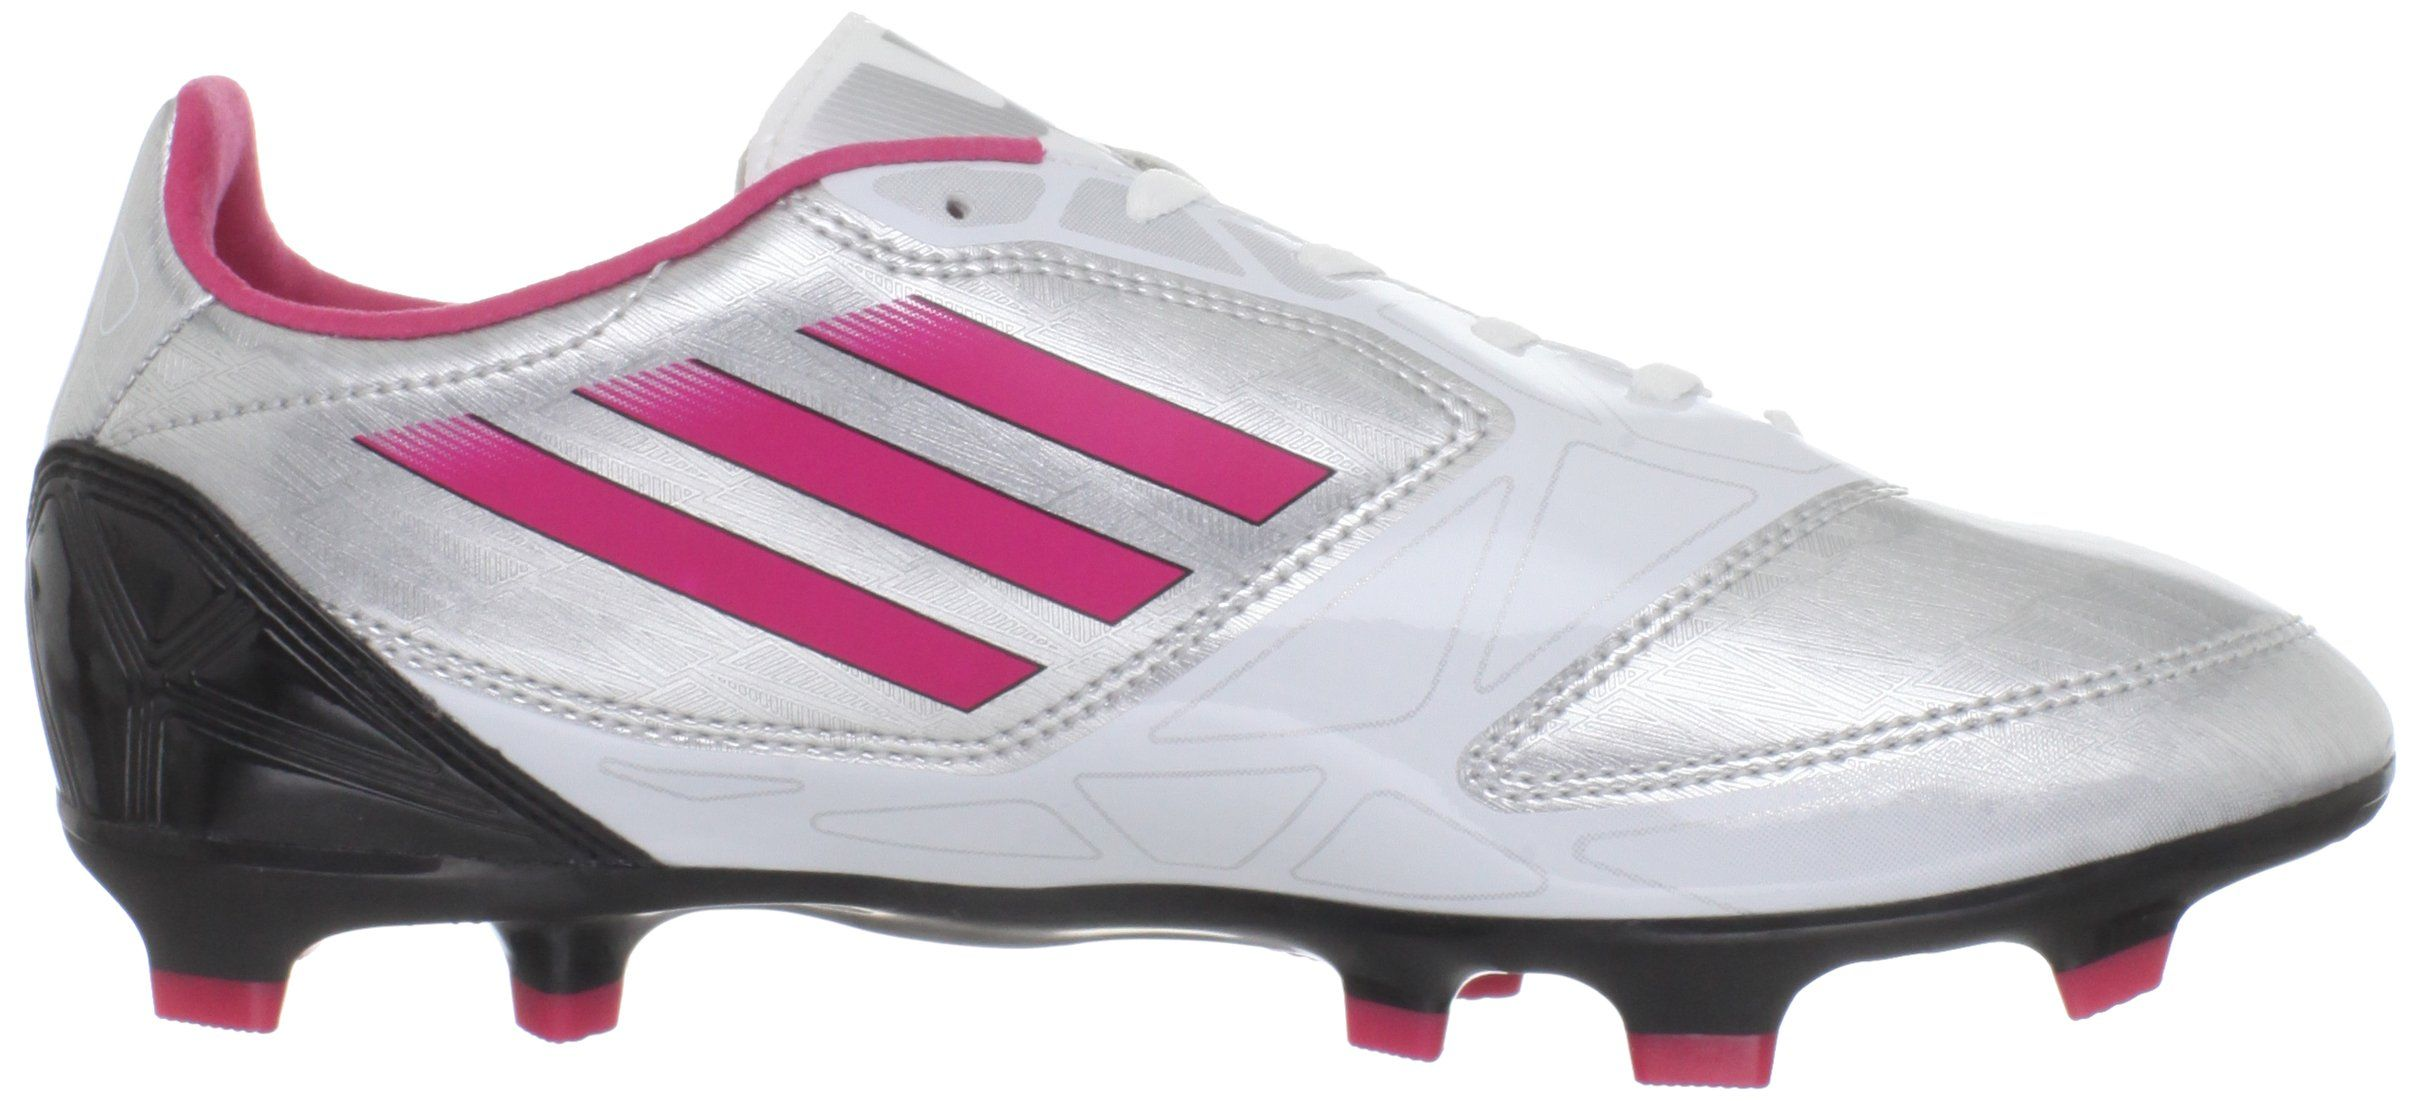 4a046ed0416a adidas Womens F10 TRX FG Soccer ShoeMetallic Silver Bright Pink Black5 M US  -- Check out this great product. (This is an affiliate link)   ...